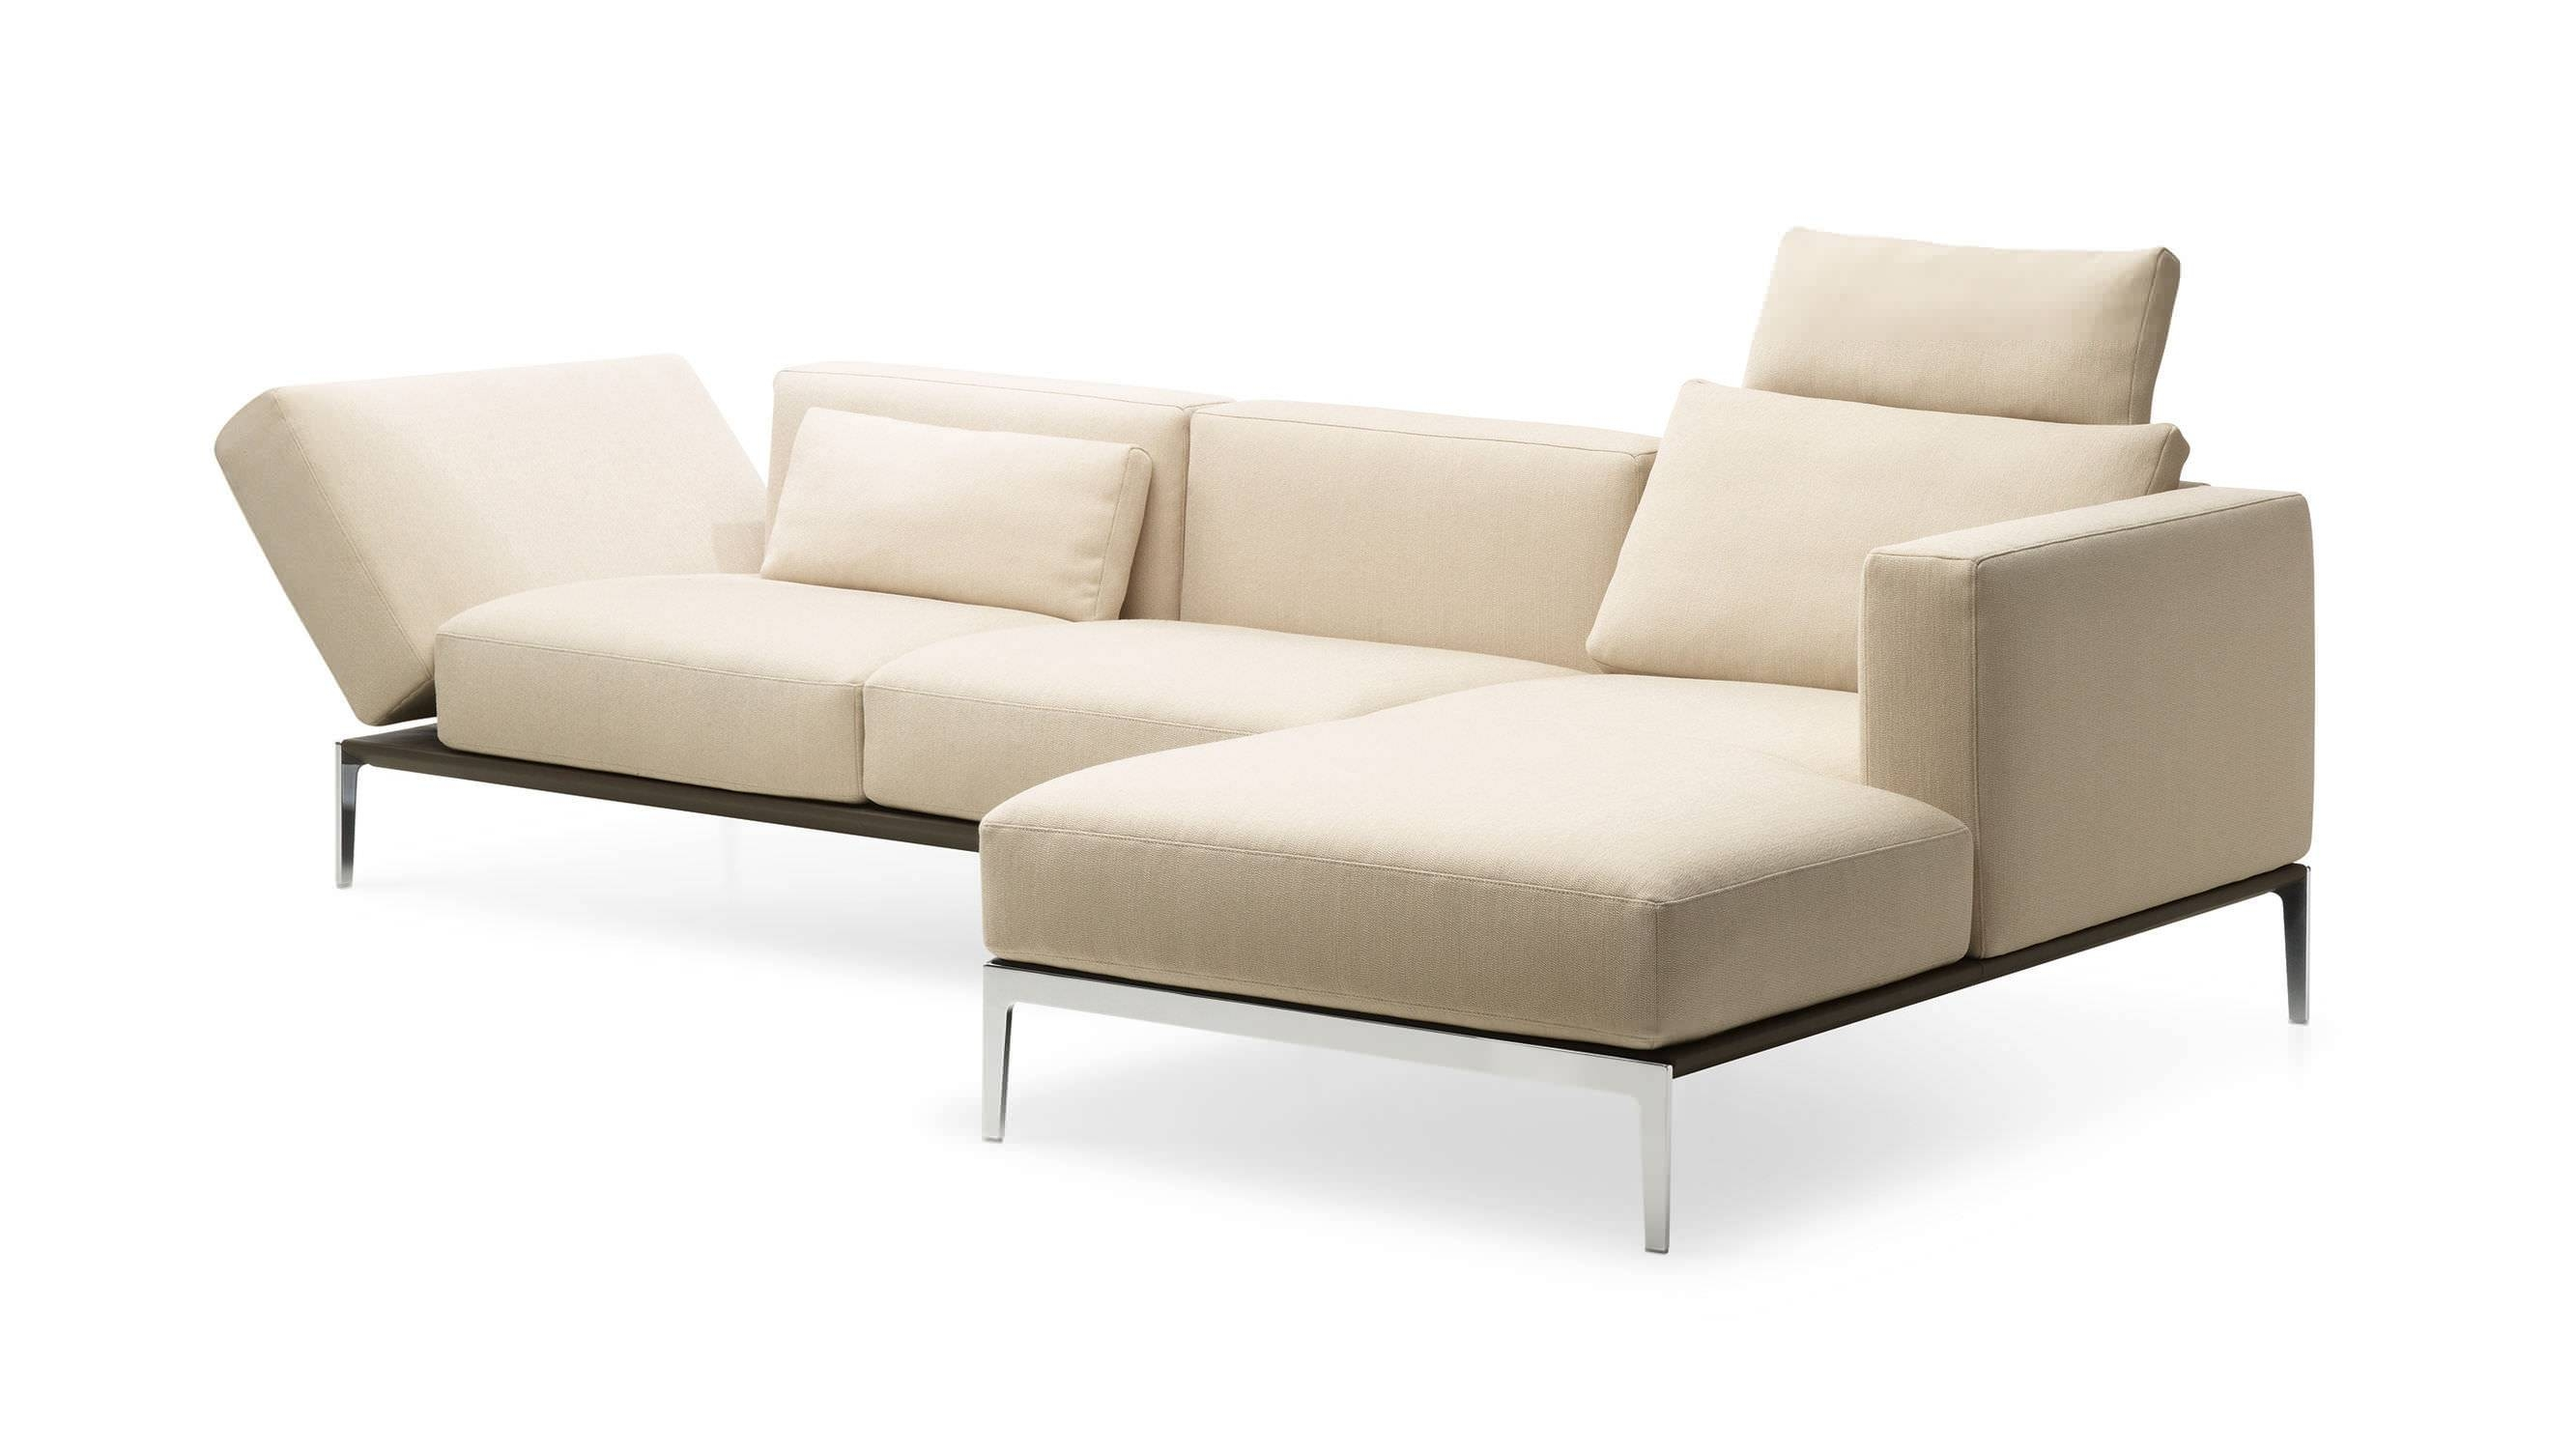 Corner Sofa / Modular / Contemporary / Leather - 1343 Piu inside Modular Corner Sofas (Image 13 of 30)